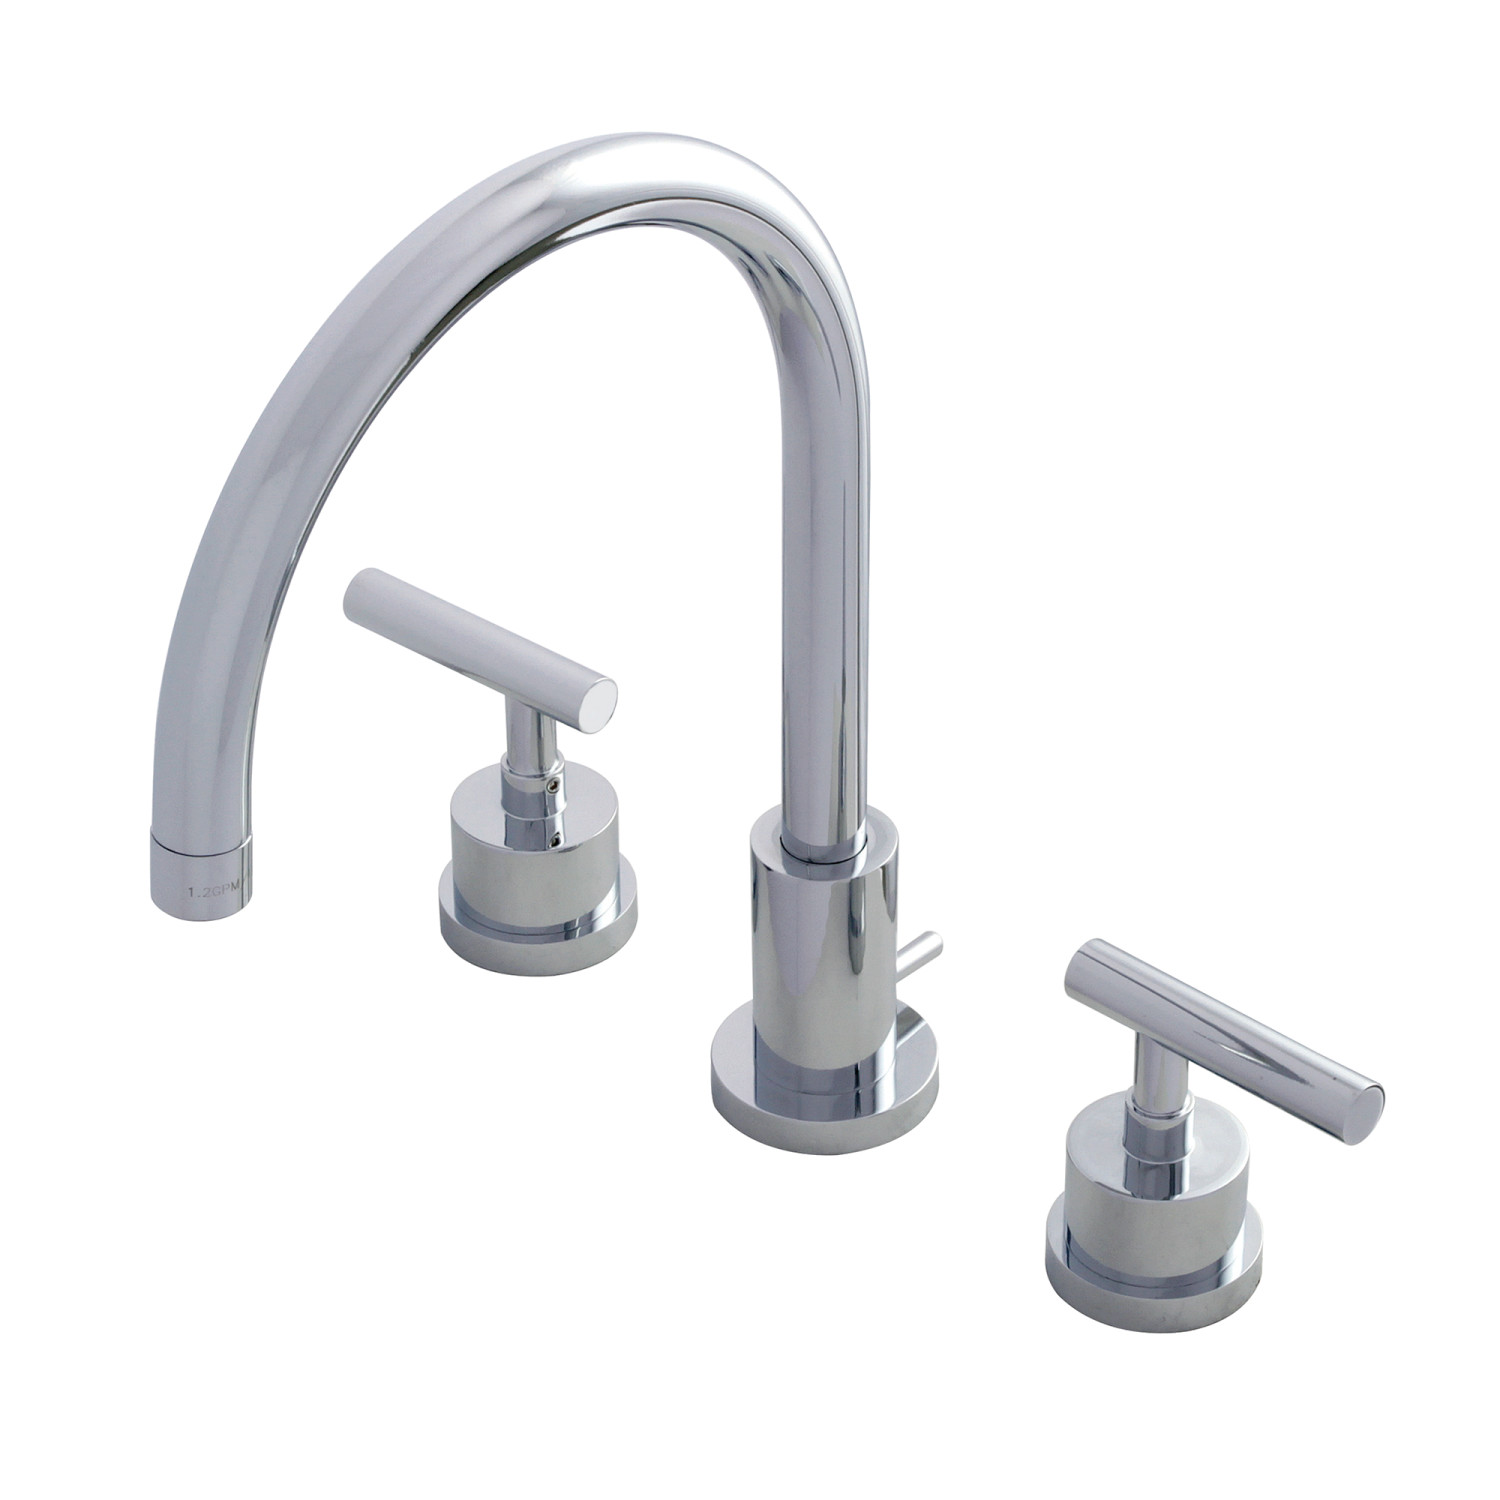 Modern 2-Handle 3-Hole Deck Mounted Widespread Bathroom Faucet with Brass Pop-Up in Polished Chrome with 3 Finish Options